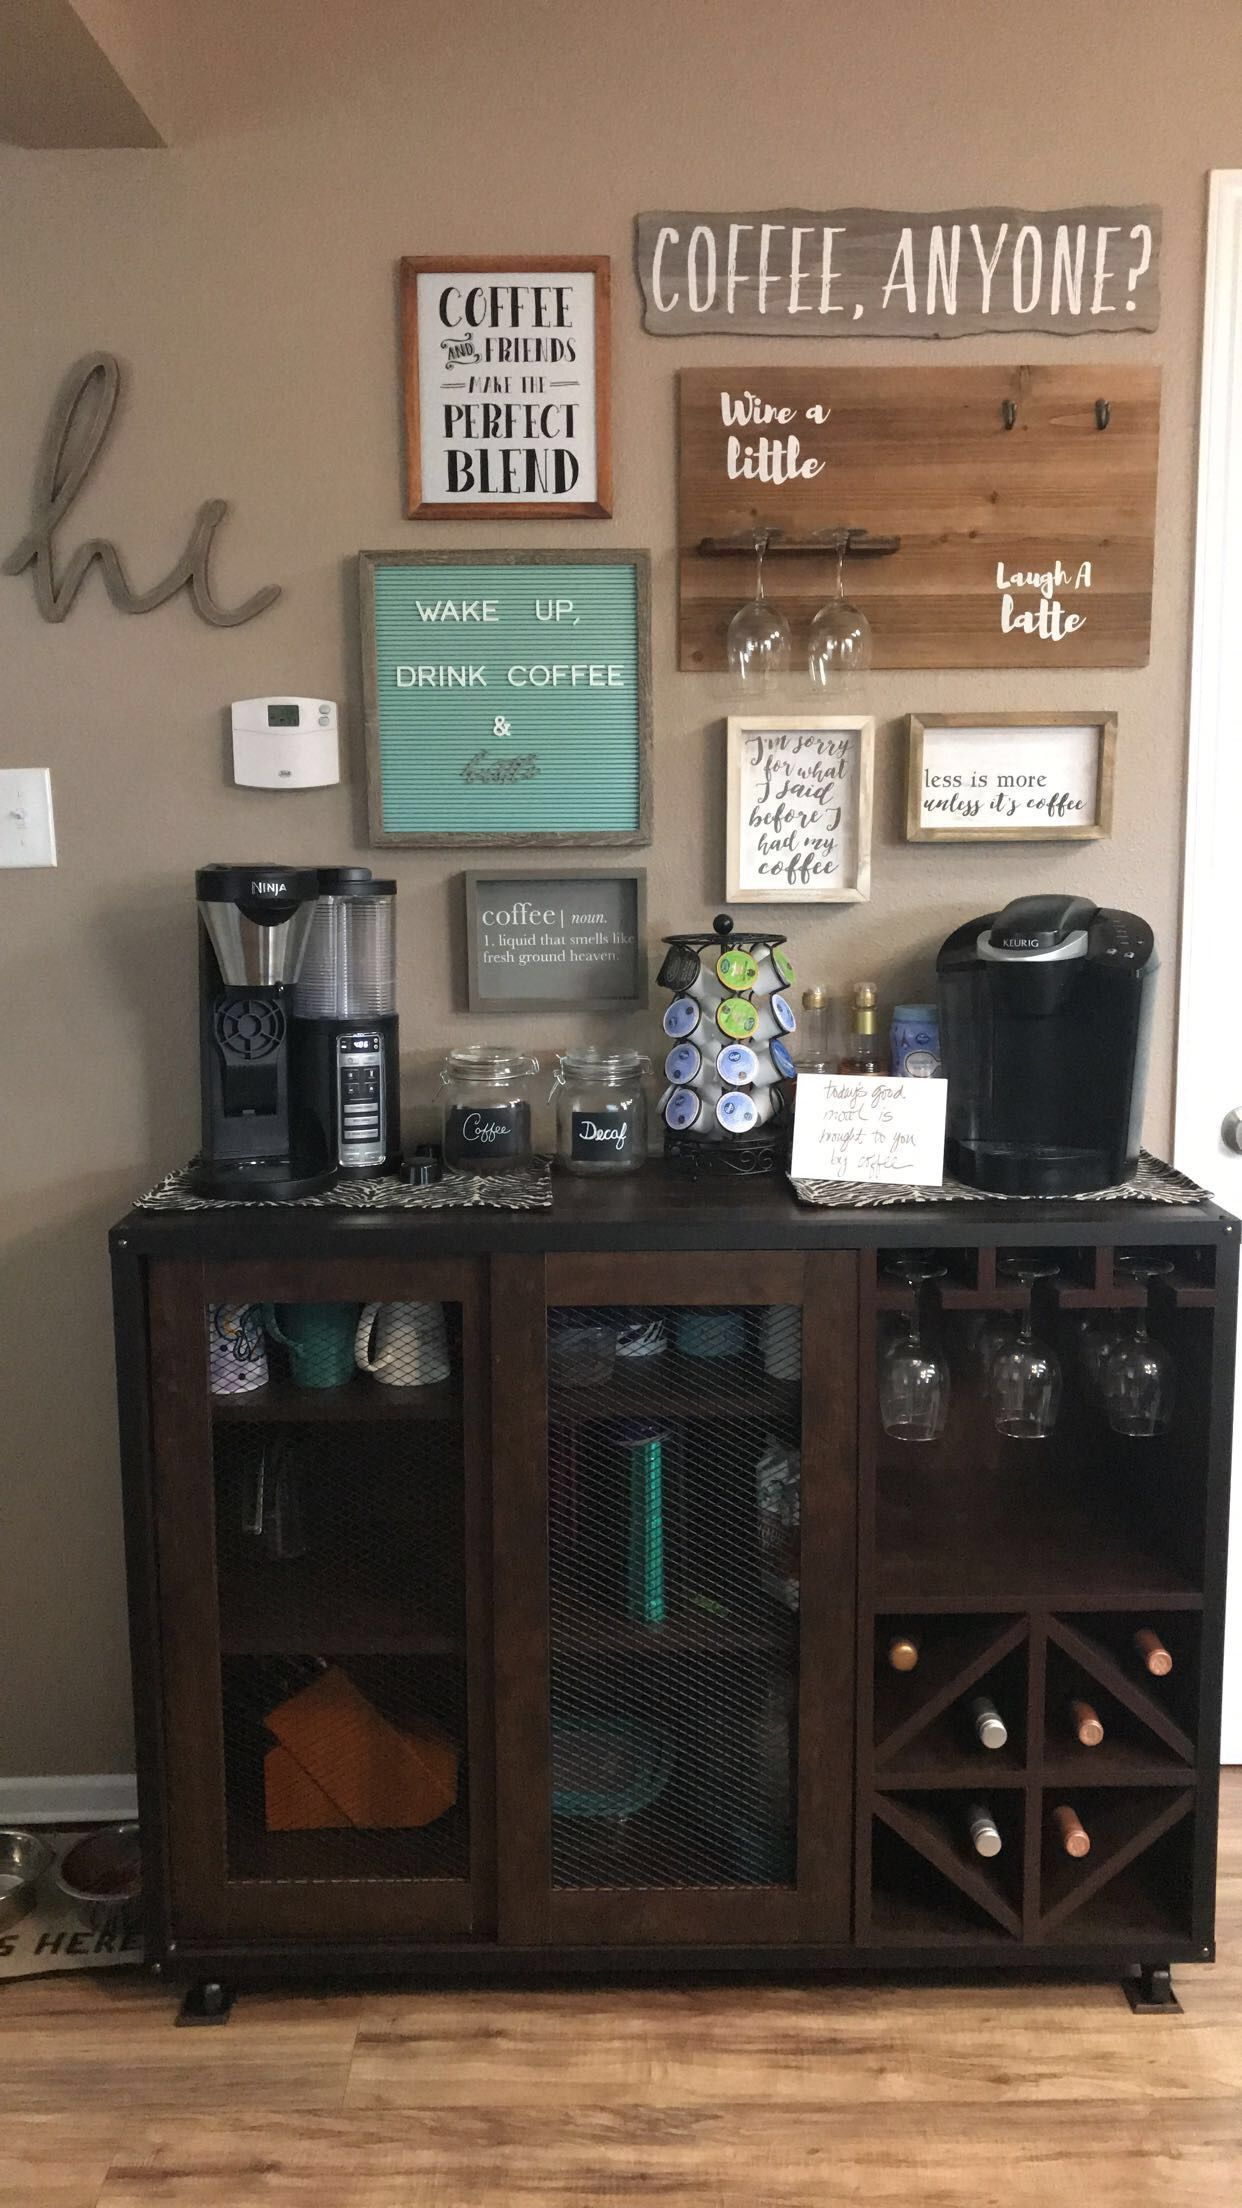 15 Exceptional DIY Coffee Bar Ideas for Your Cozy Home #coffeebarideas